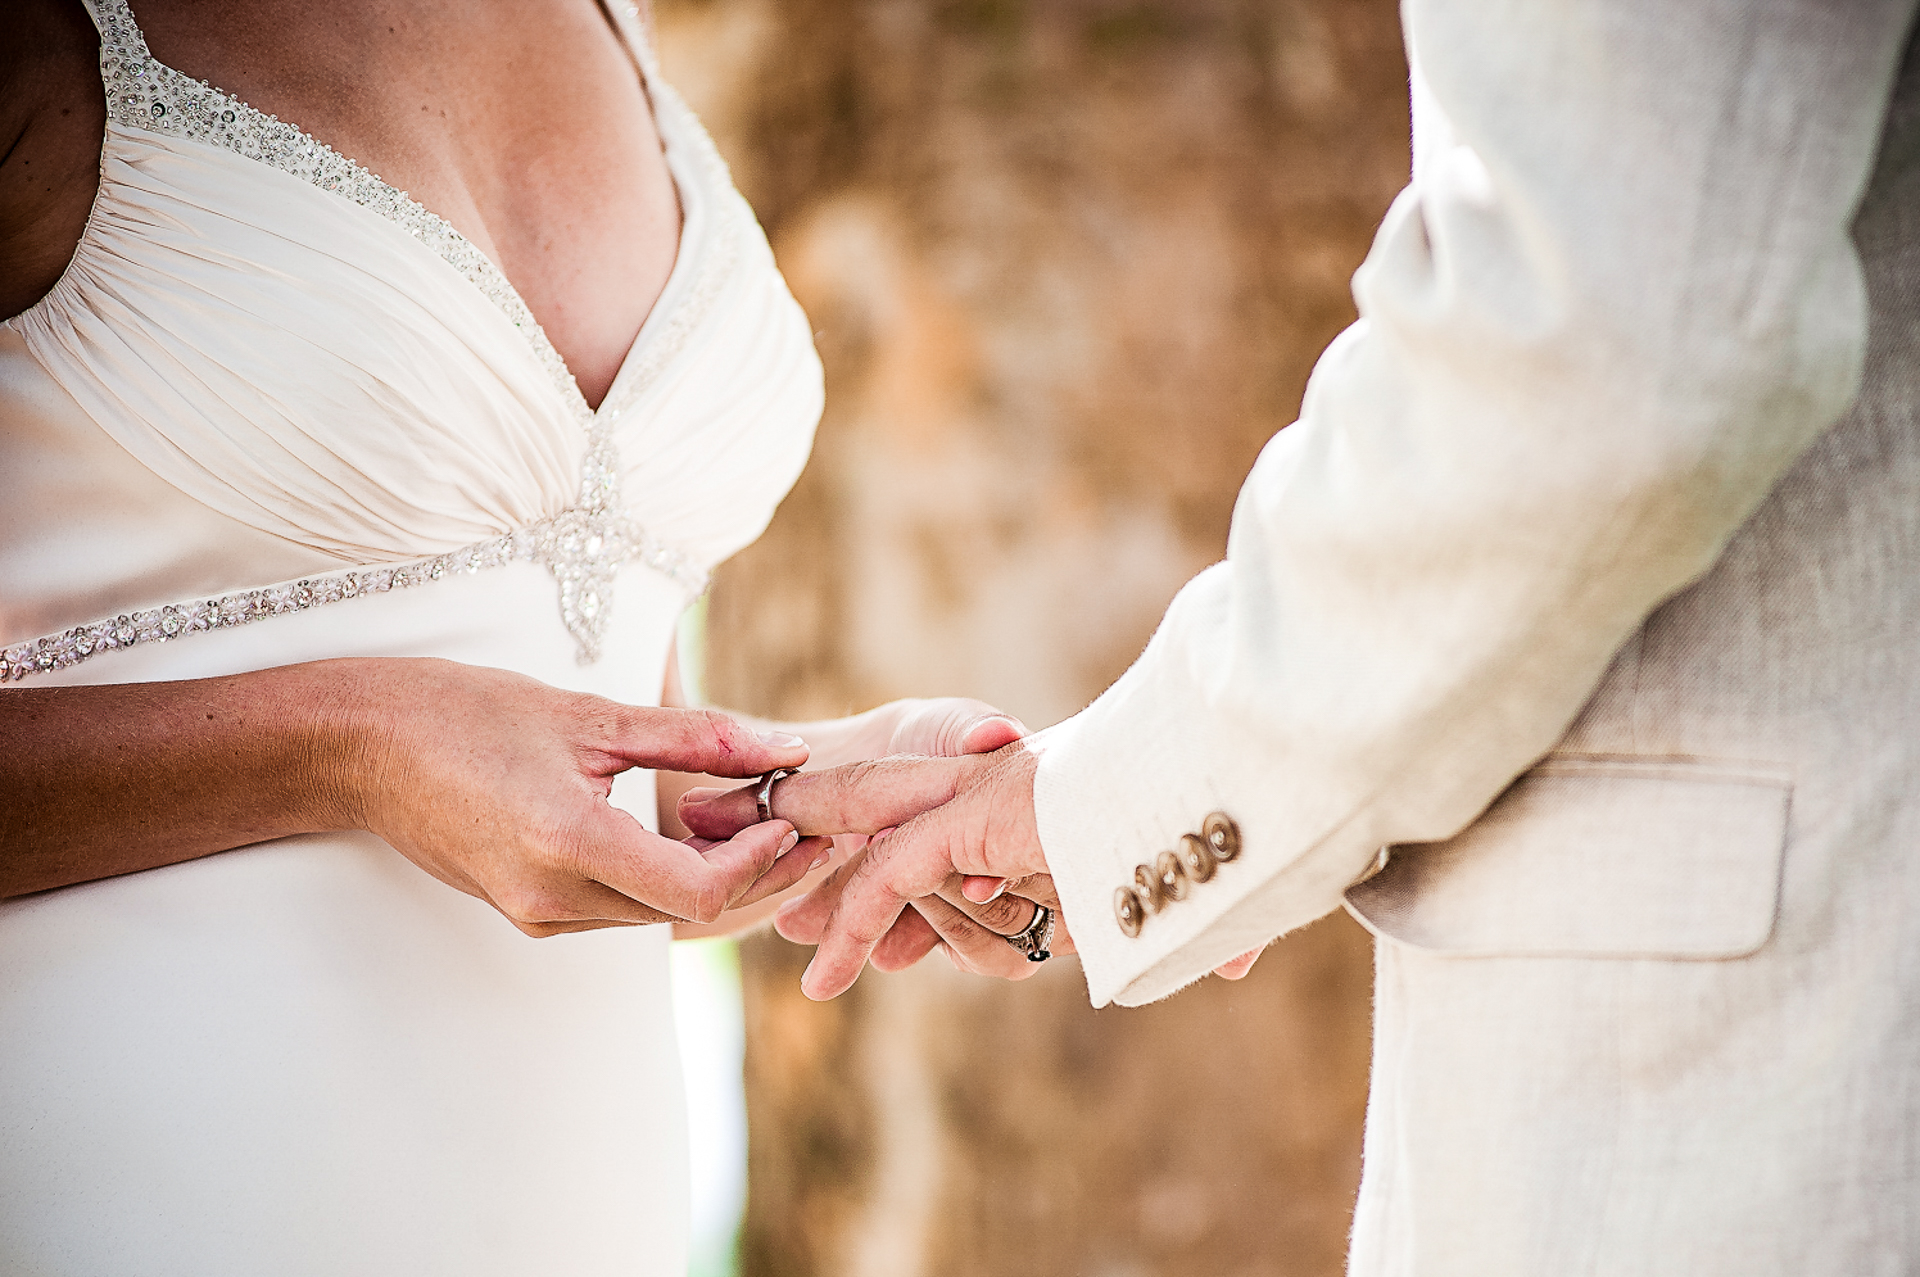 Western Cape, South Africa Elopement Ceremony Picture | The bride places the wedding ring on her groom